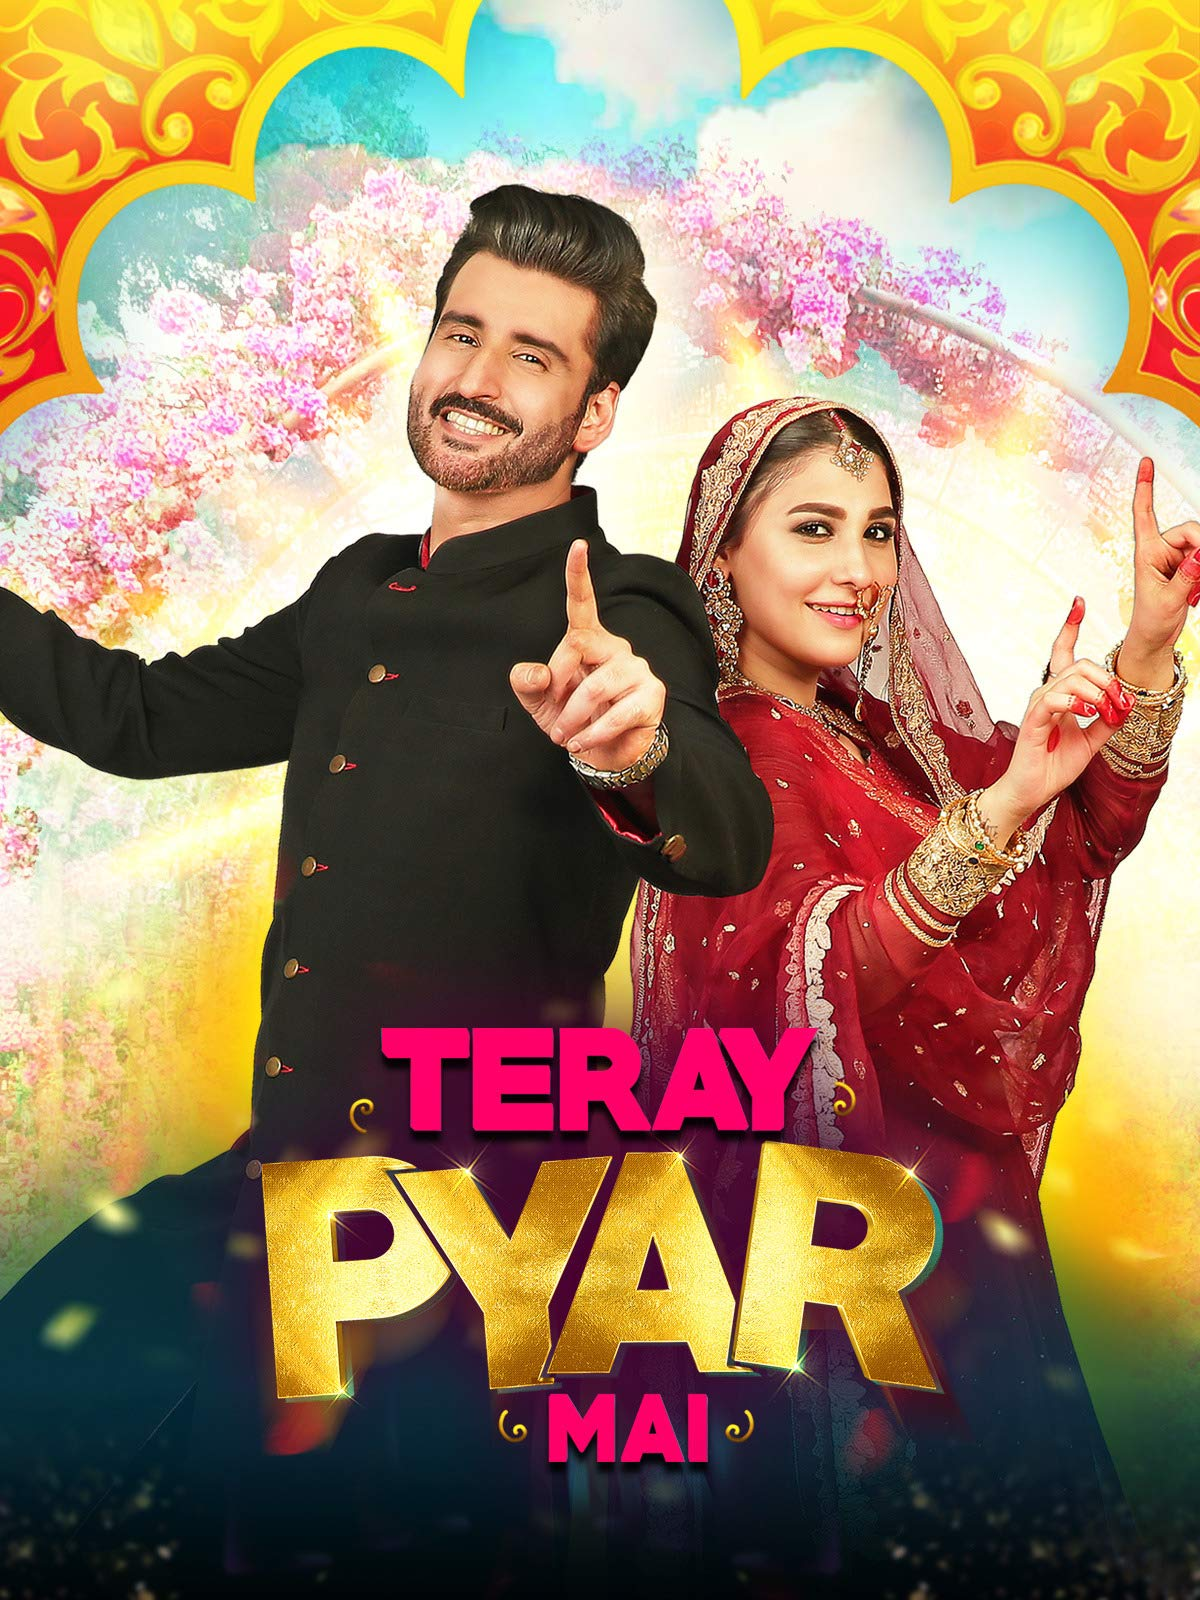 Teray Pyar Mai 2020 Urdu 240MB HDRip Download